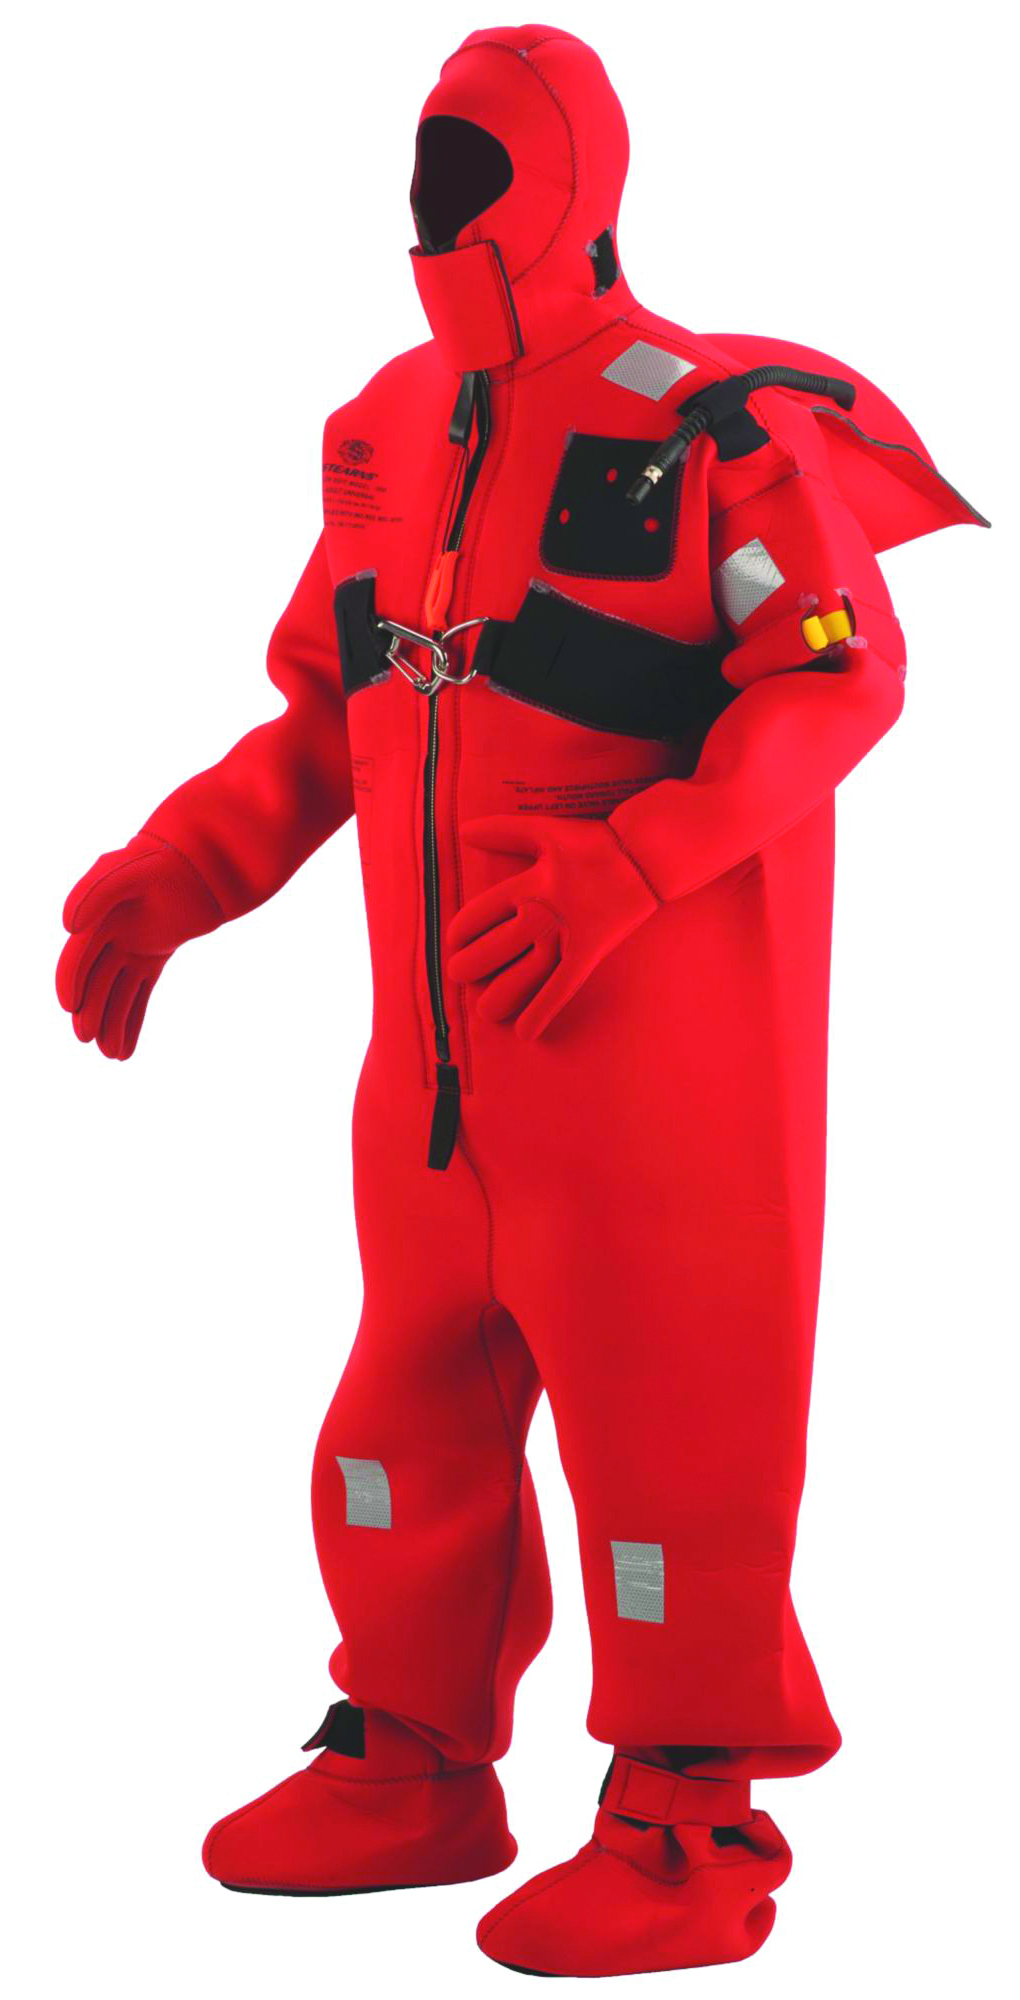 2000008113 - SOLAS Cold Water Immersion Suits-SOLAS Cold Water Immersion Suits-Red/Black, Size: Adult Universal----UOM: 1/EA